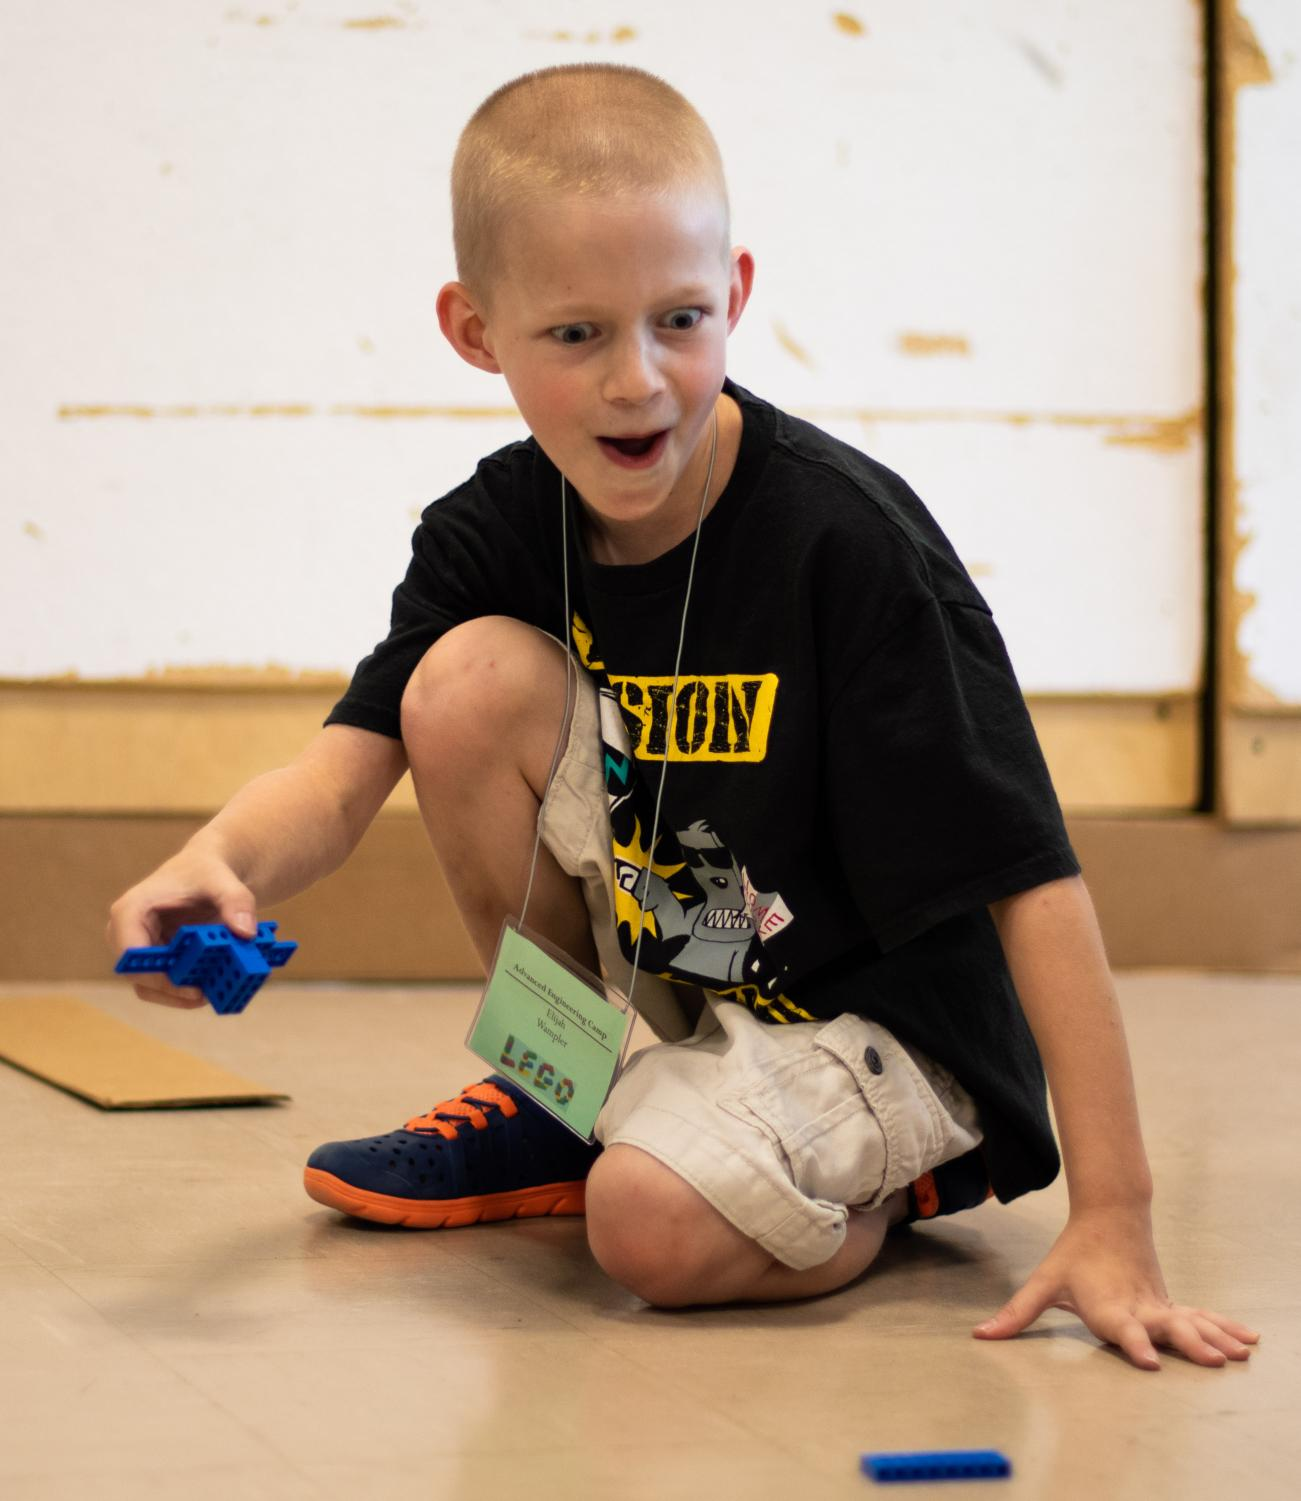 Elijah+Wampler+reacts+after+crashing+his+LEGO+car+during+the+Advanced+Engineering+LEGO+Camp+on+Tuesday%2C+July+9%2C+2019+inside+Quigley+Hall.+The+camp+is+for+children+entering+3rd%2C+4th+and+5th+grade.+During+the+five+day+camp+children+will+complete+projects+that+explore+energy+supply%2C+transfer%2C+accumulation%2C+conversation+and+consumption.+Jon+Davey%2C+the+project+director+for+LEGO+Camps%2C+his+goal+is+to+inspire+%E2%80%98young+people+to+be+creative+and+have+fun+while+learning.%E2%80%99